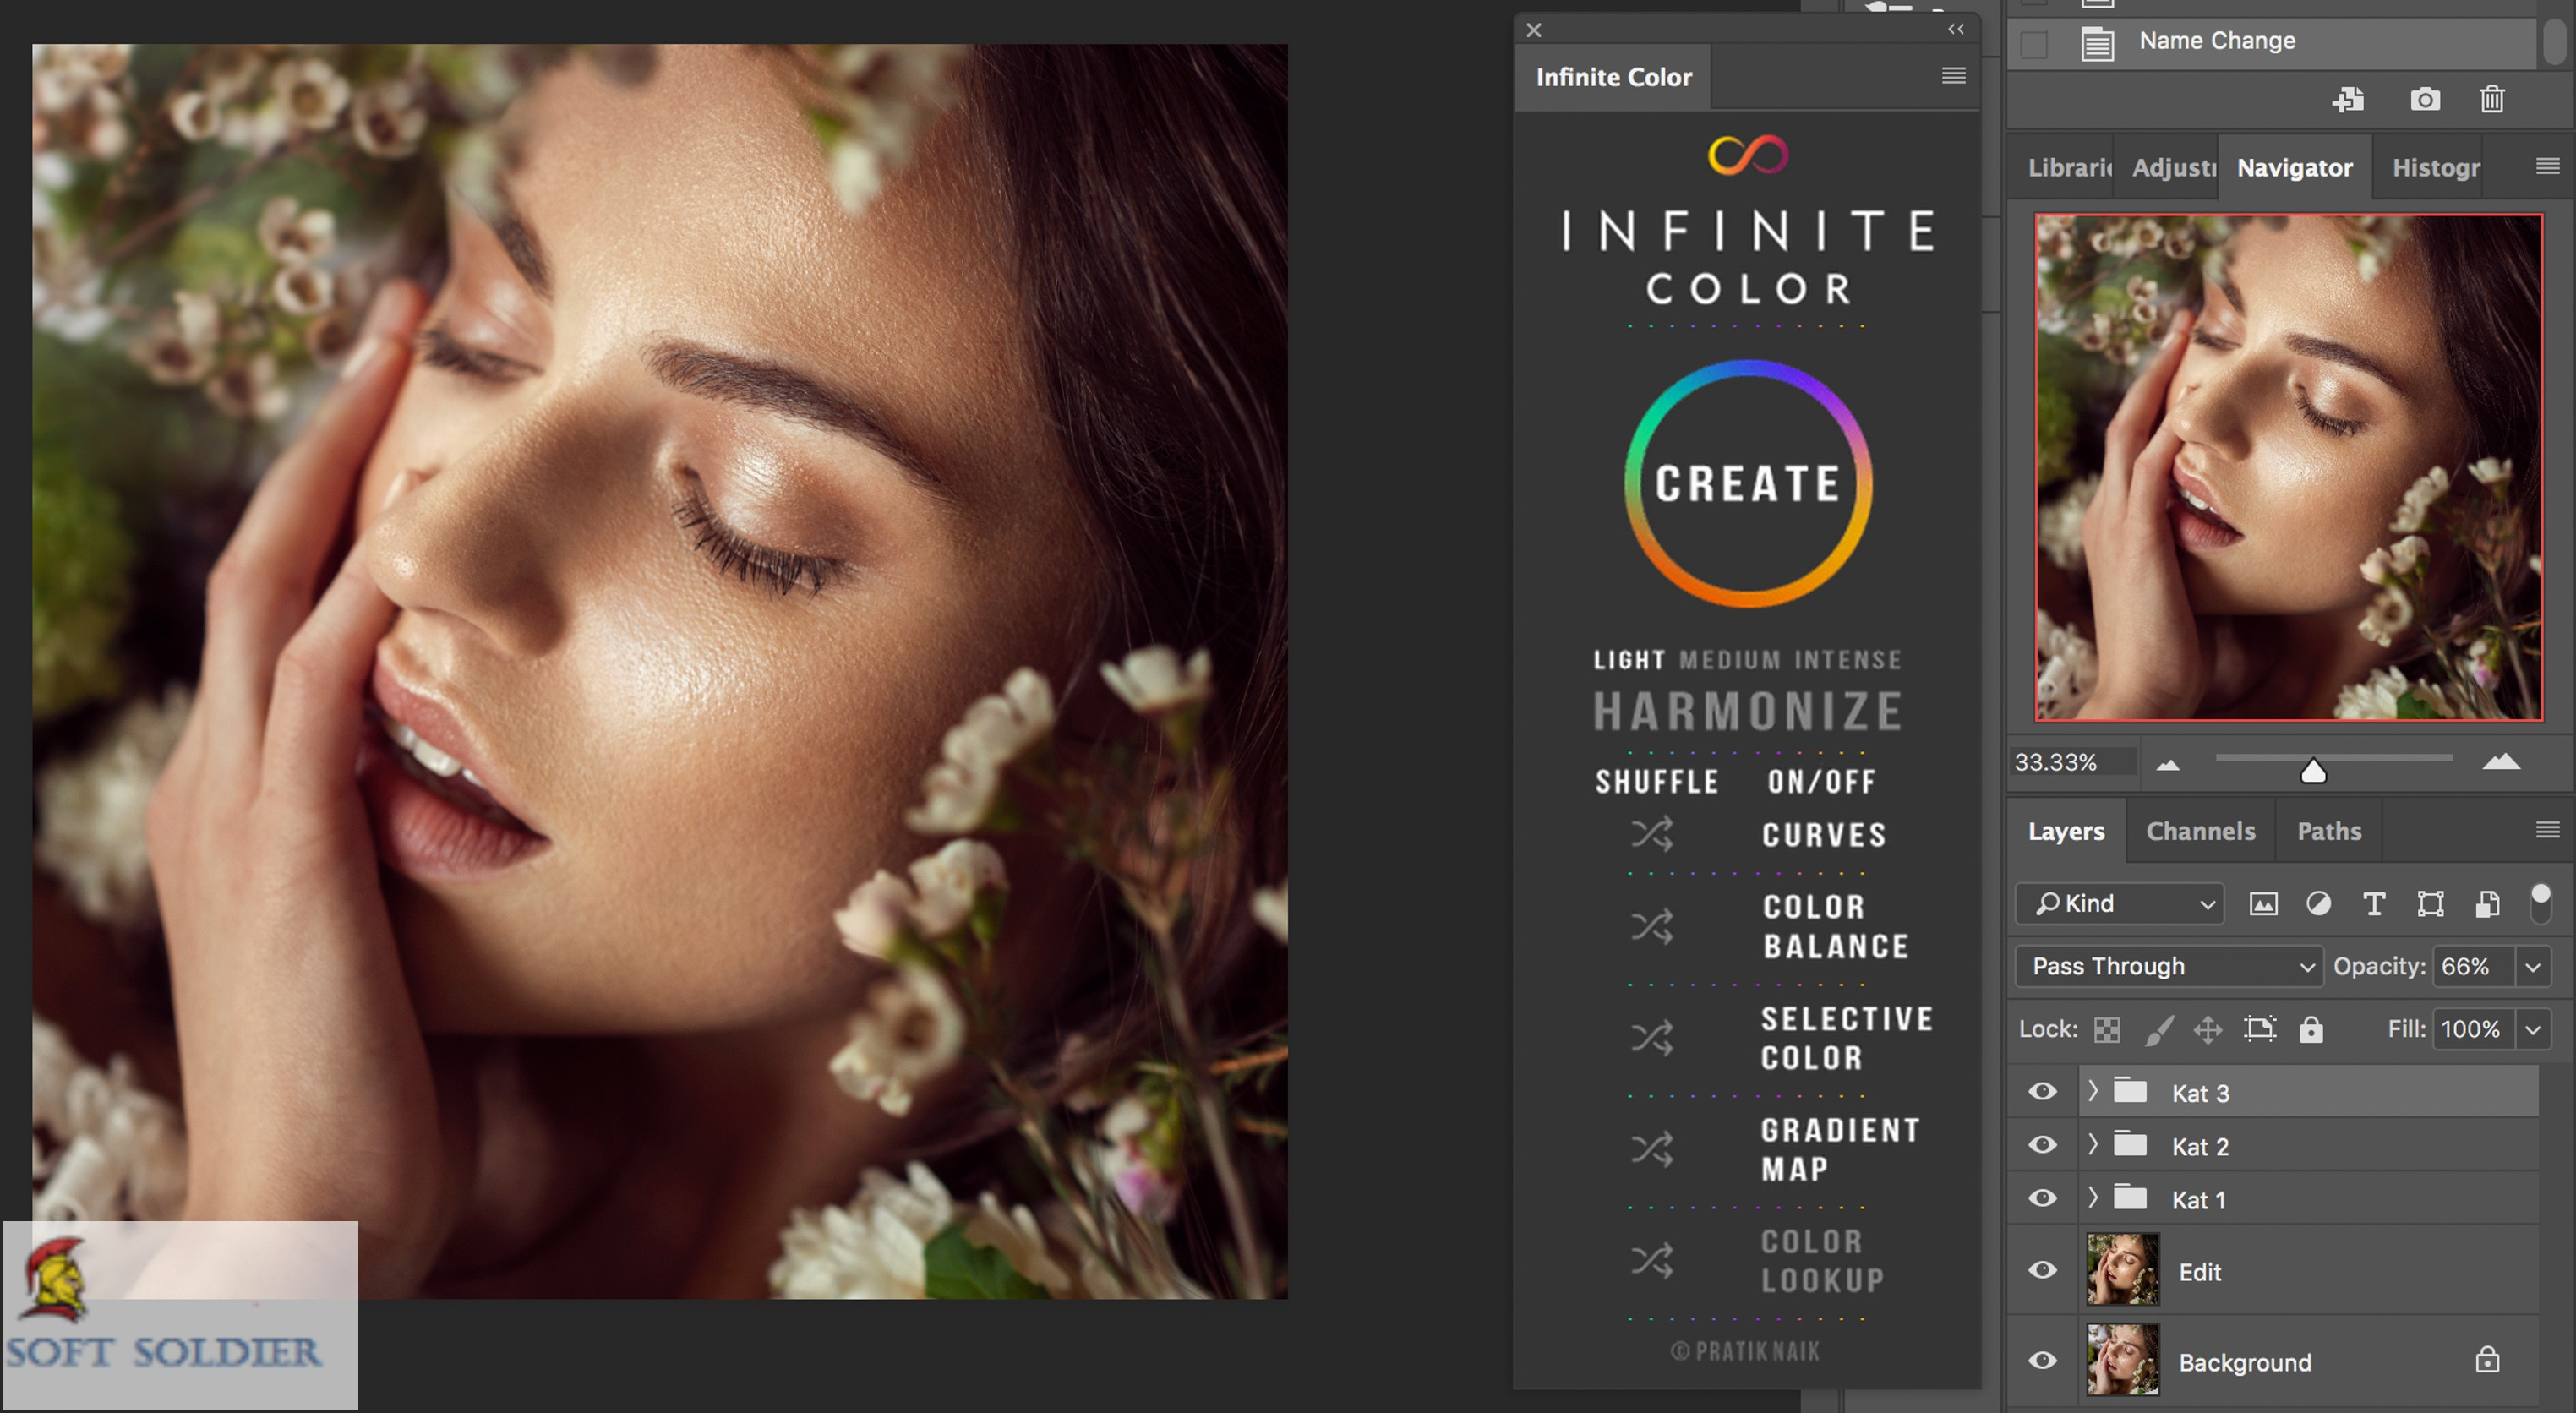 Infinite Color Panel Plug-in for Photoshop